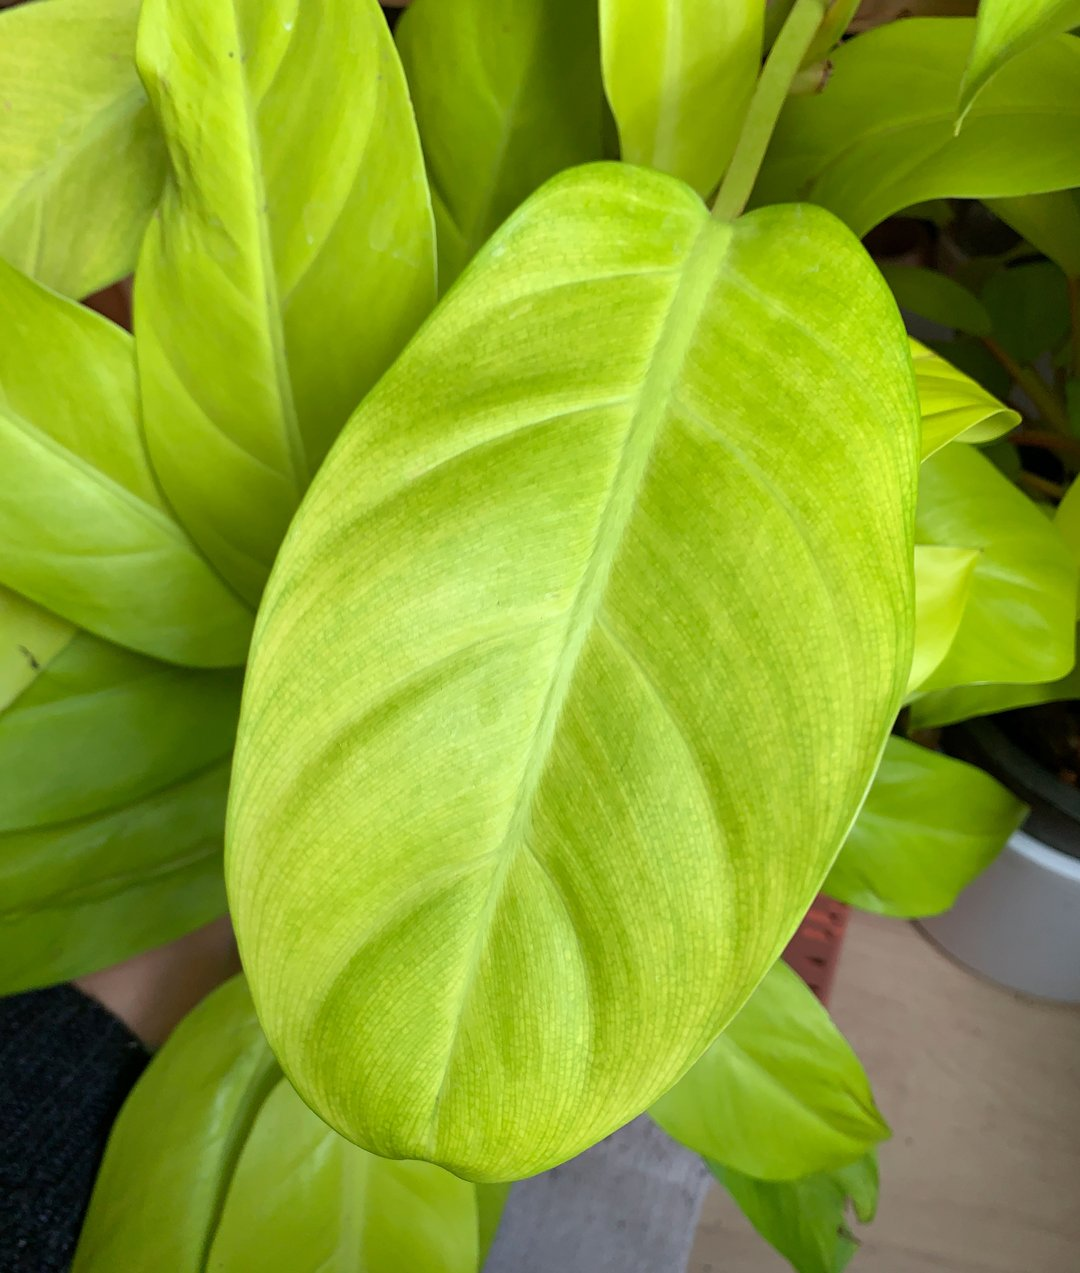 Entretien - Philodendron lemon lime